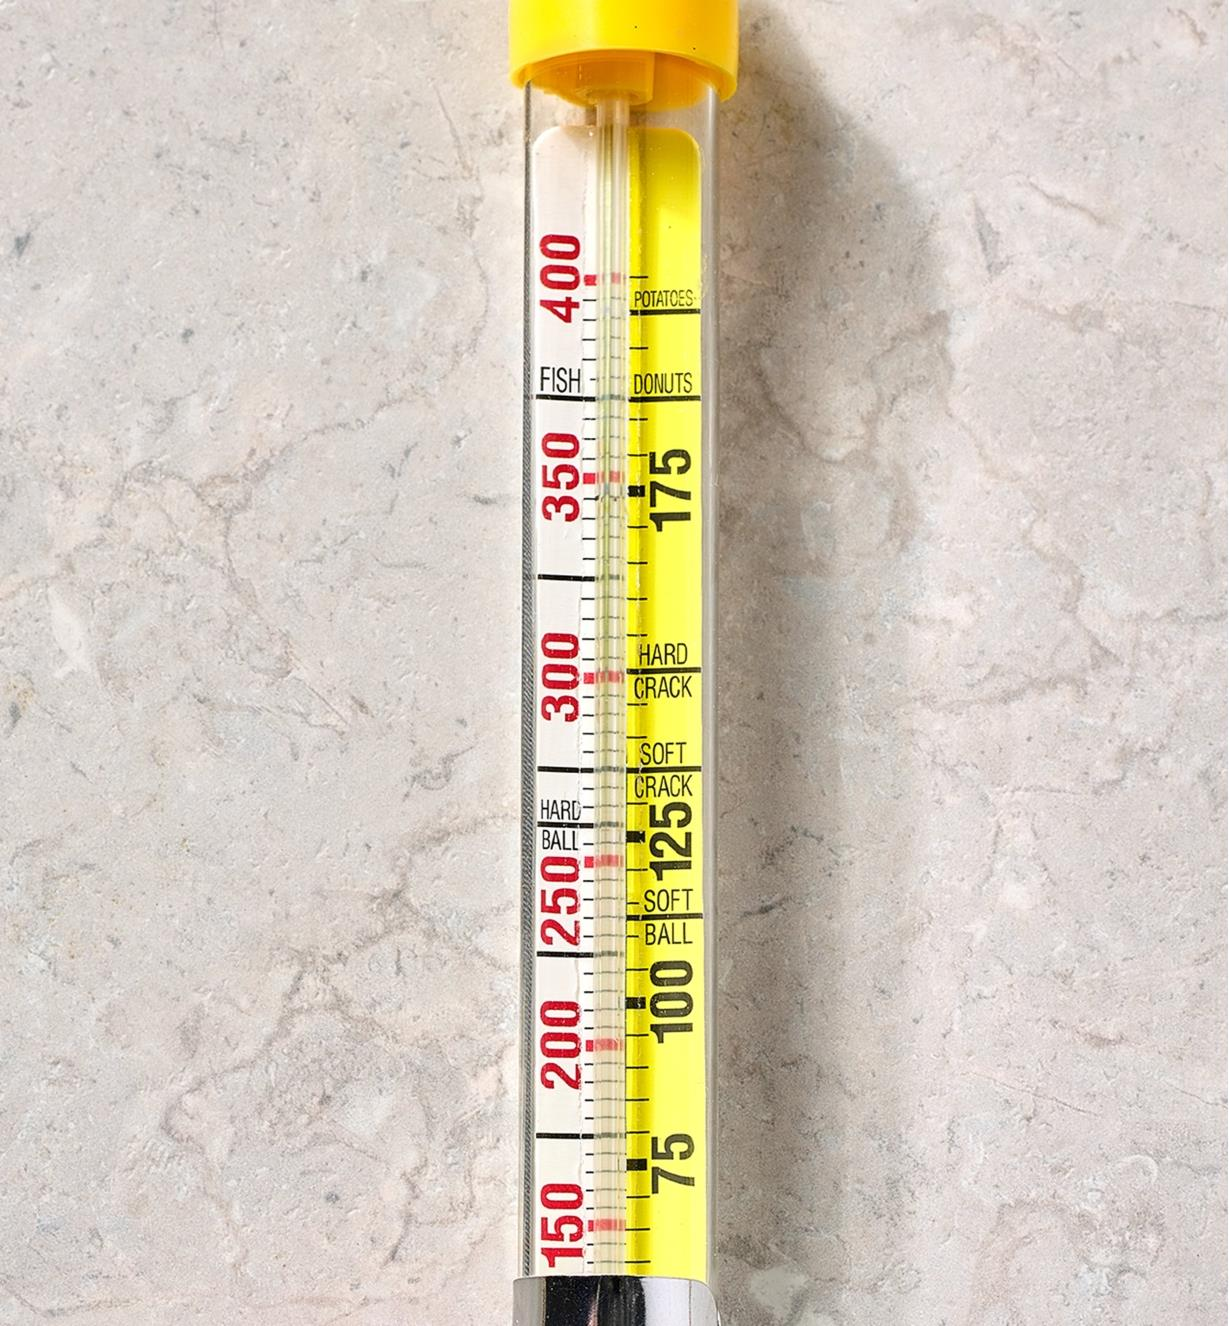 A close-up view of the temperature scales on the candy and deep-fry thermometer